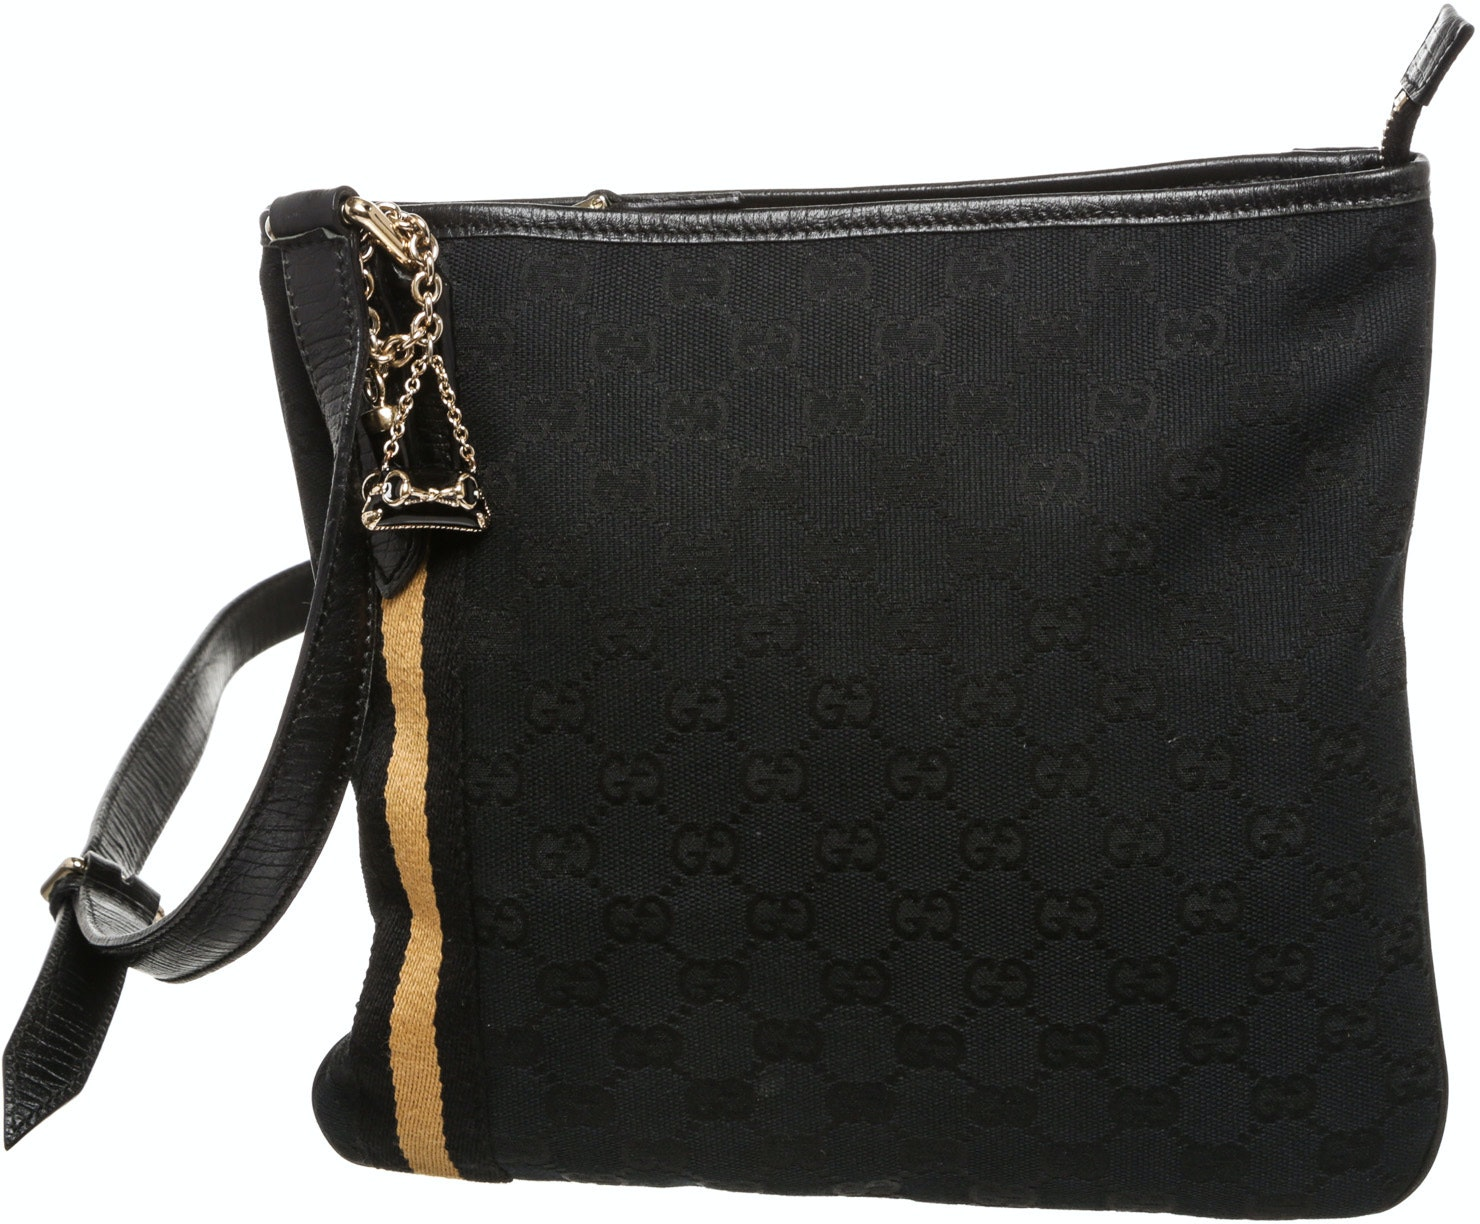 Gucci Web Jolicoeur Charms Messenger Monogram GG Black